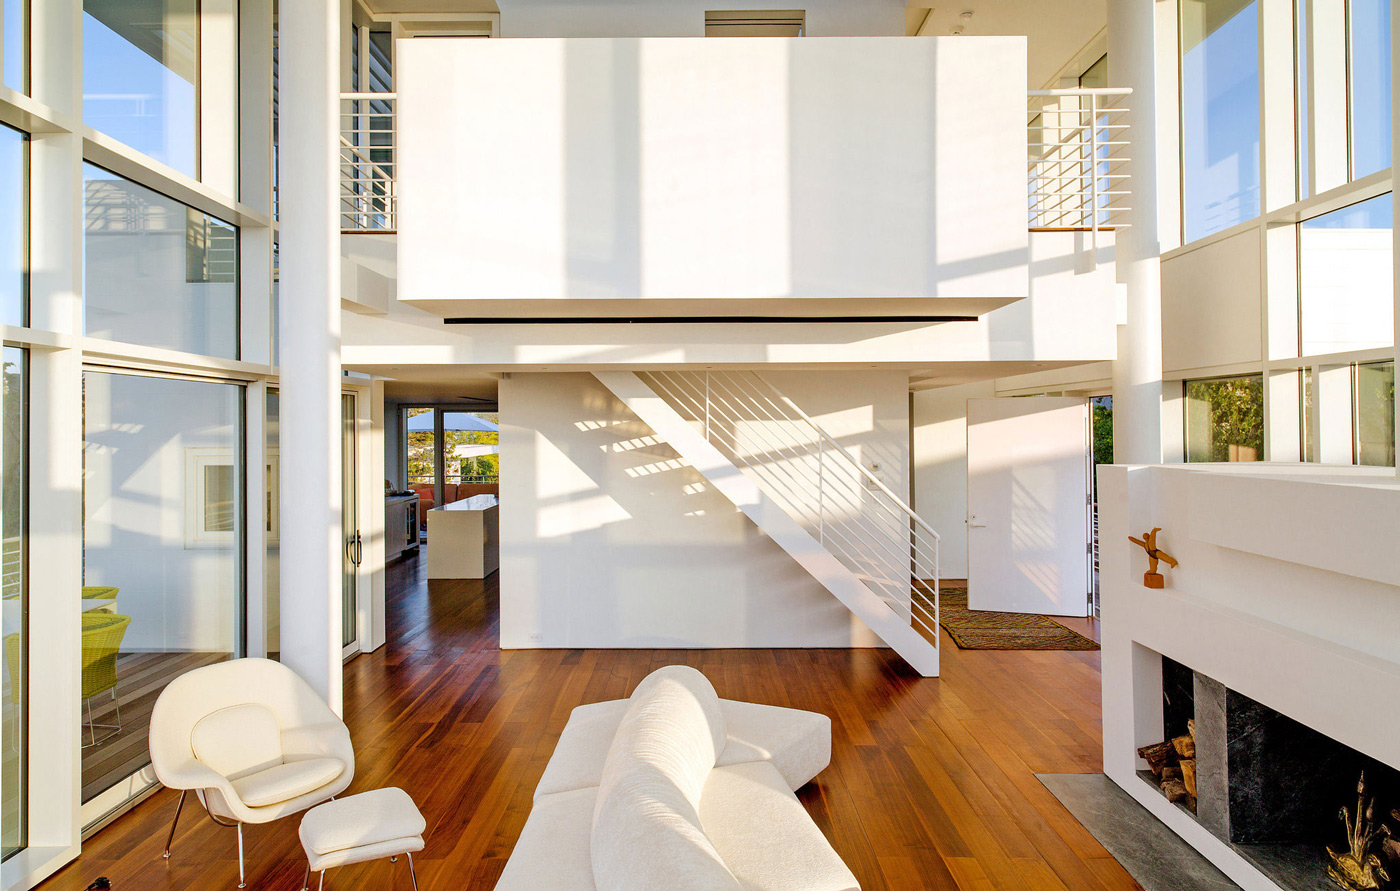 Fireplace, Living Space, Mezzanine, Richard Meier's Fire Island House